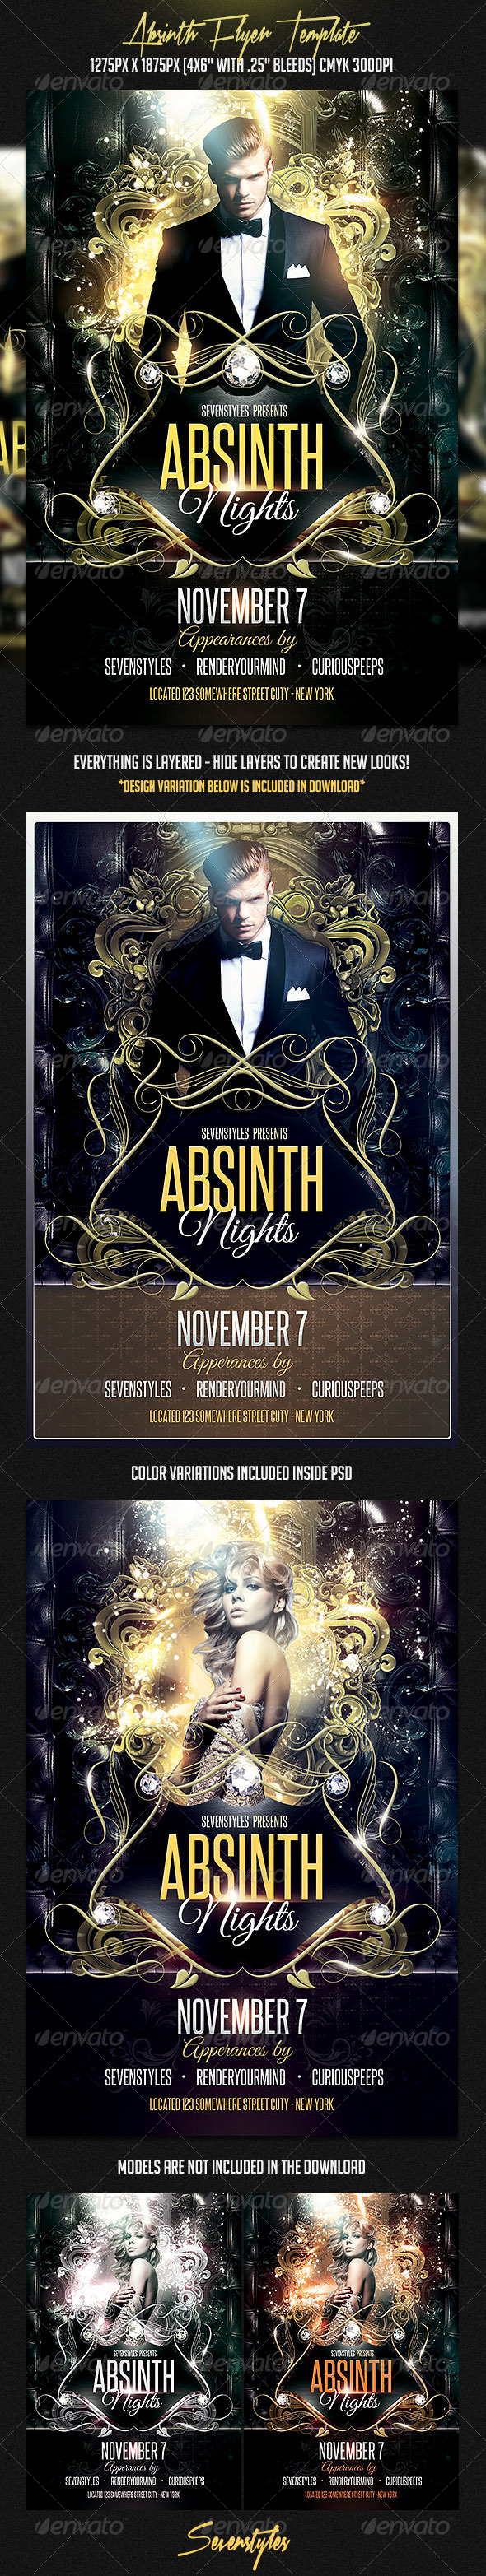 Absinth Flyer Template - Flyers Print Templates